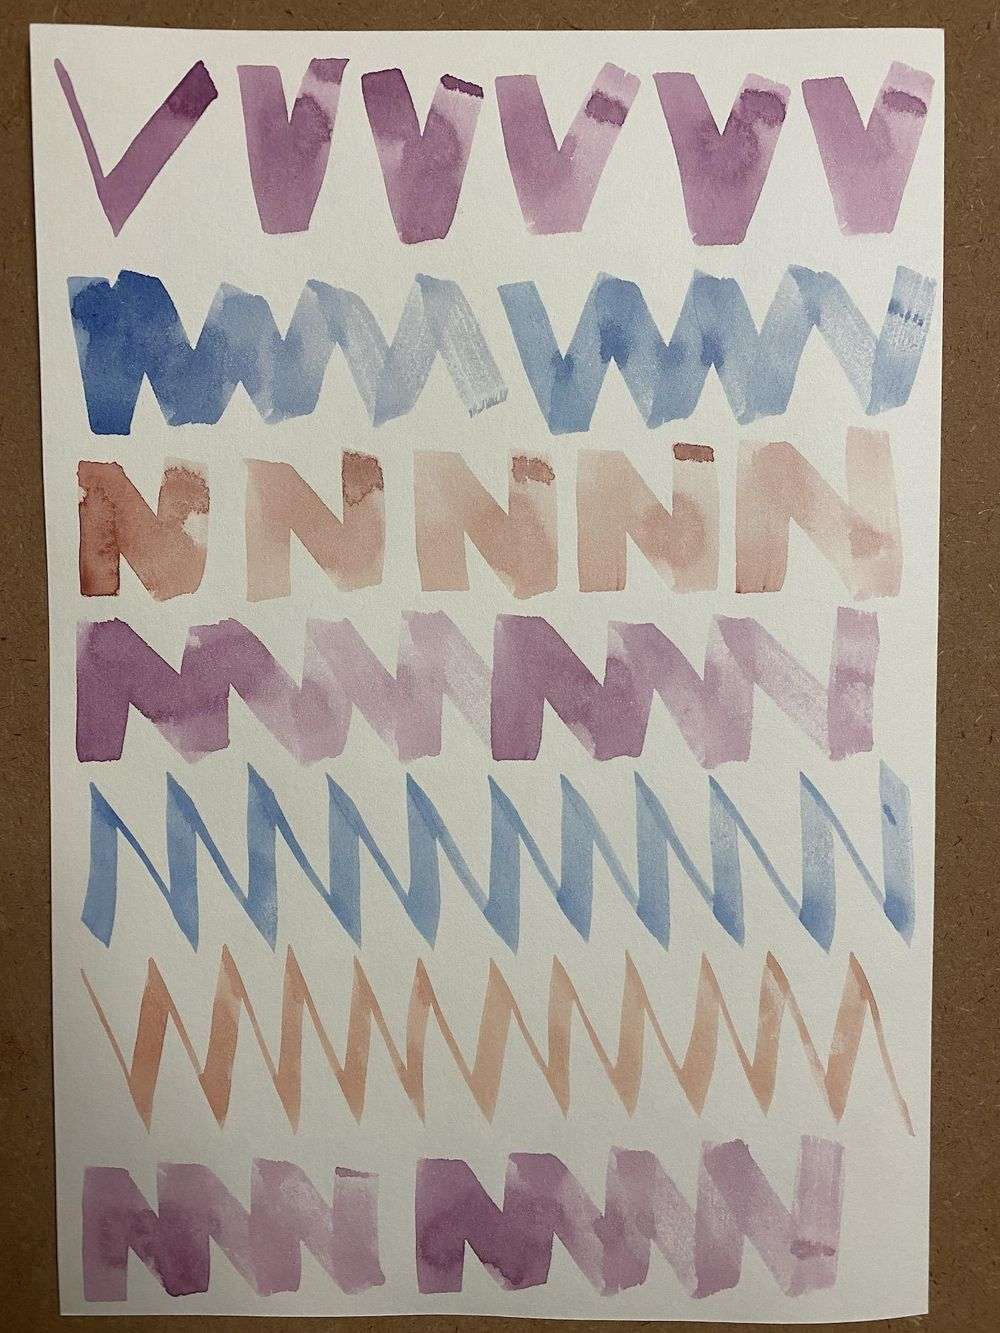 Watercolor workout exercises - image 7 - student project